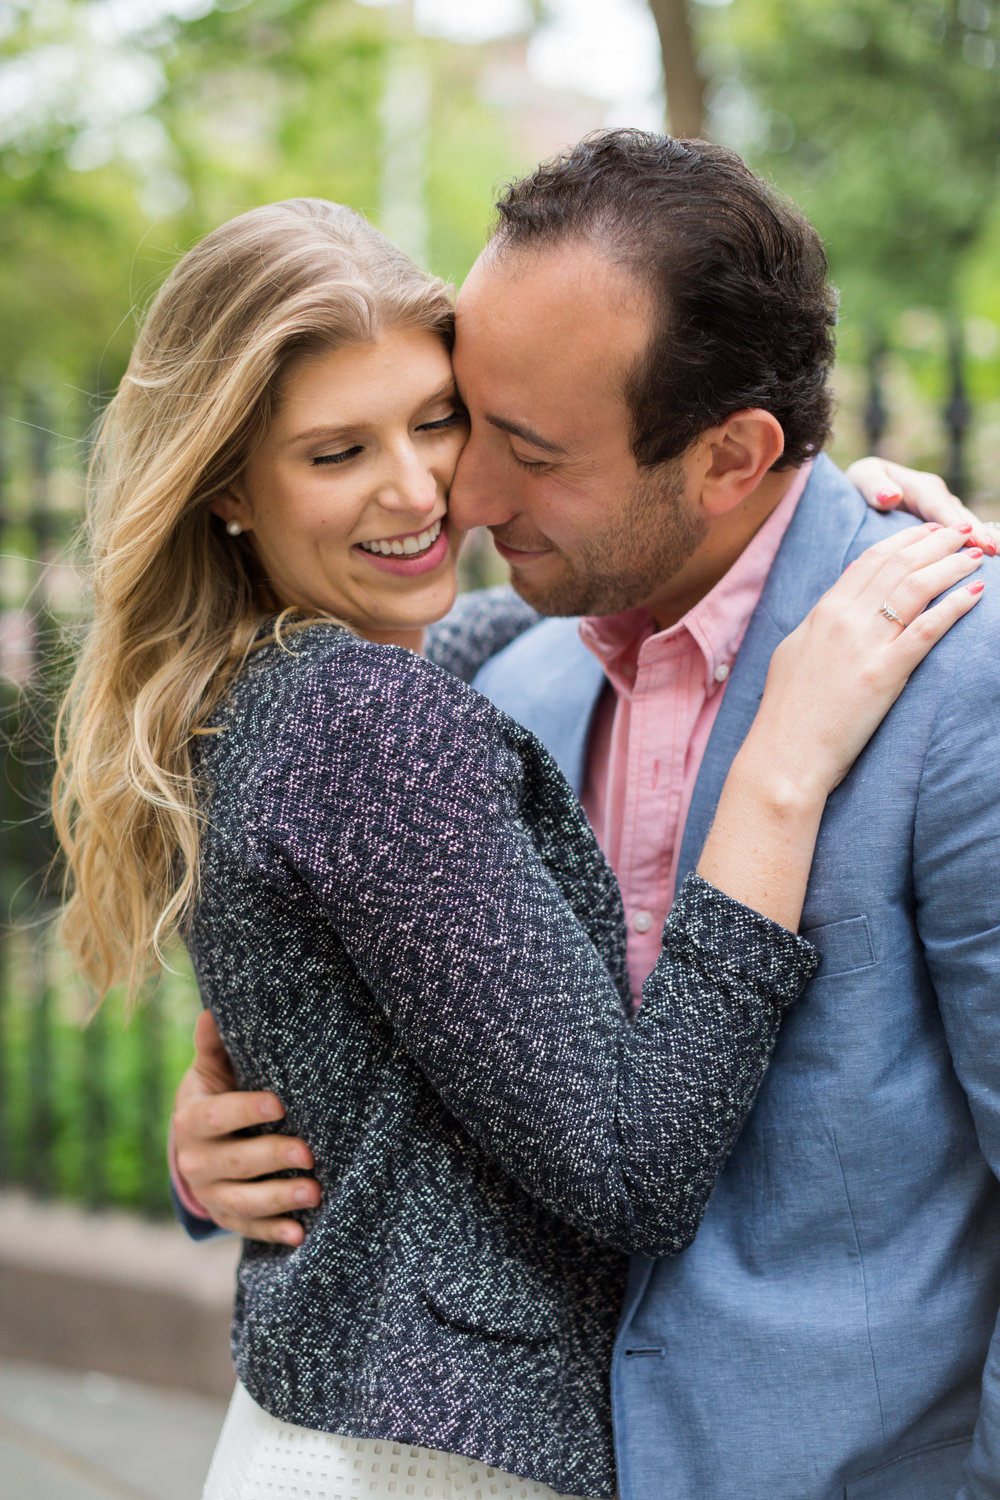 Melissa Kruse Photography - Courtney & JP Gramercy NYC Engagement Photos-161.jpg